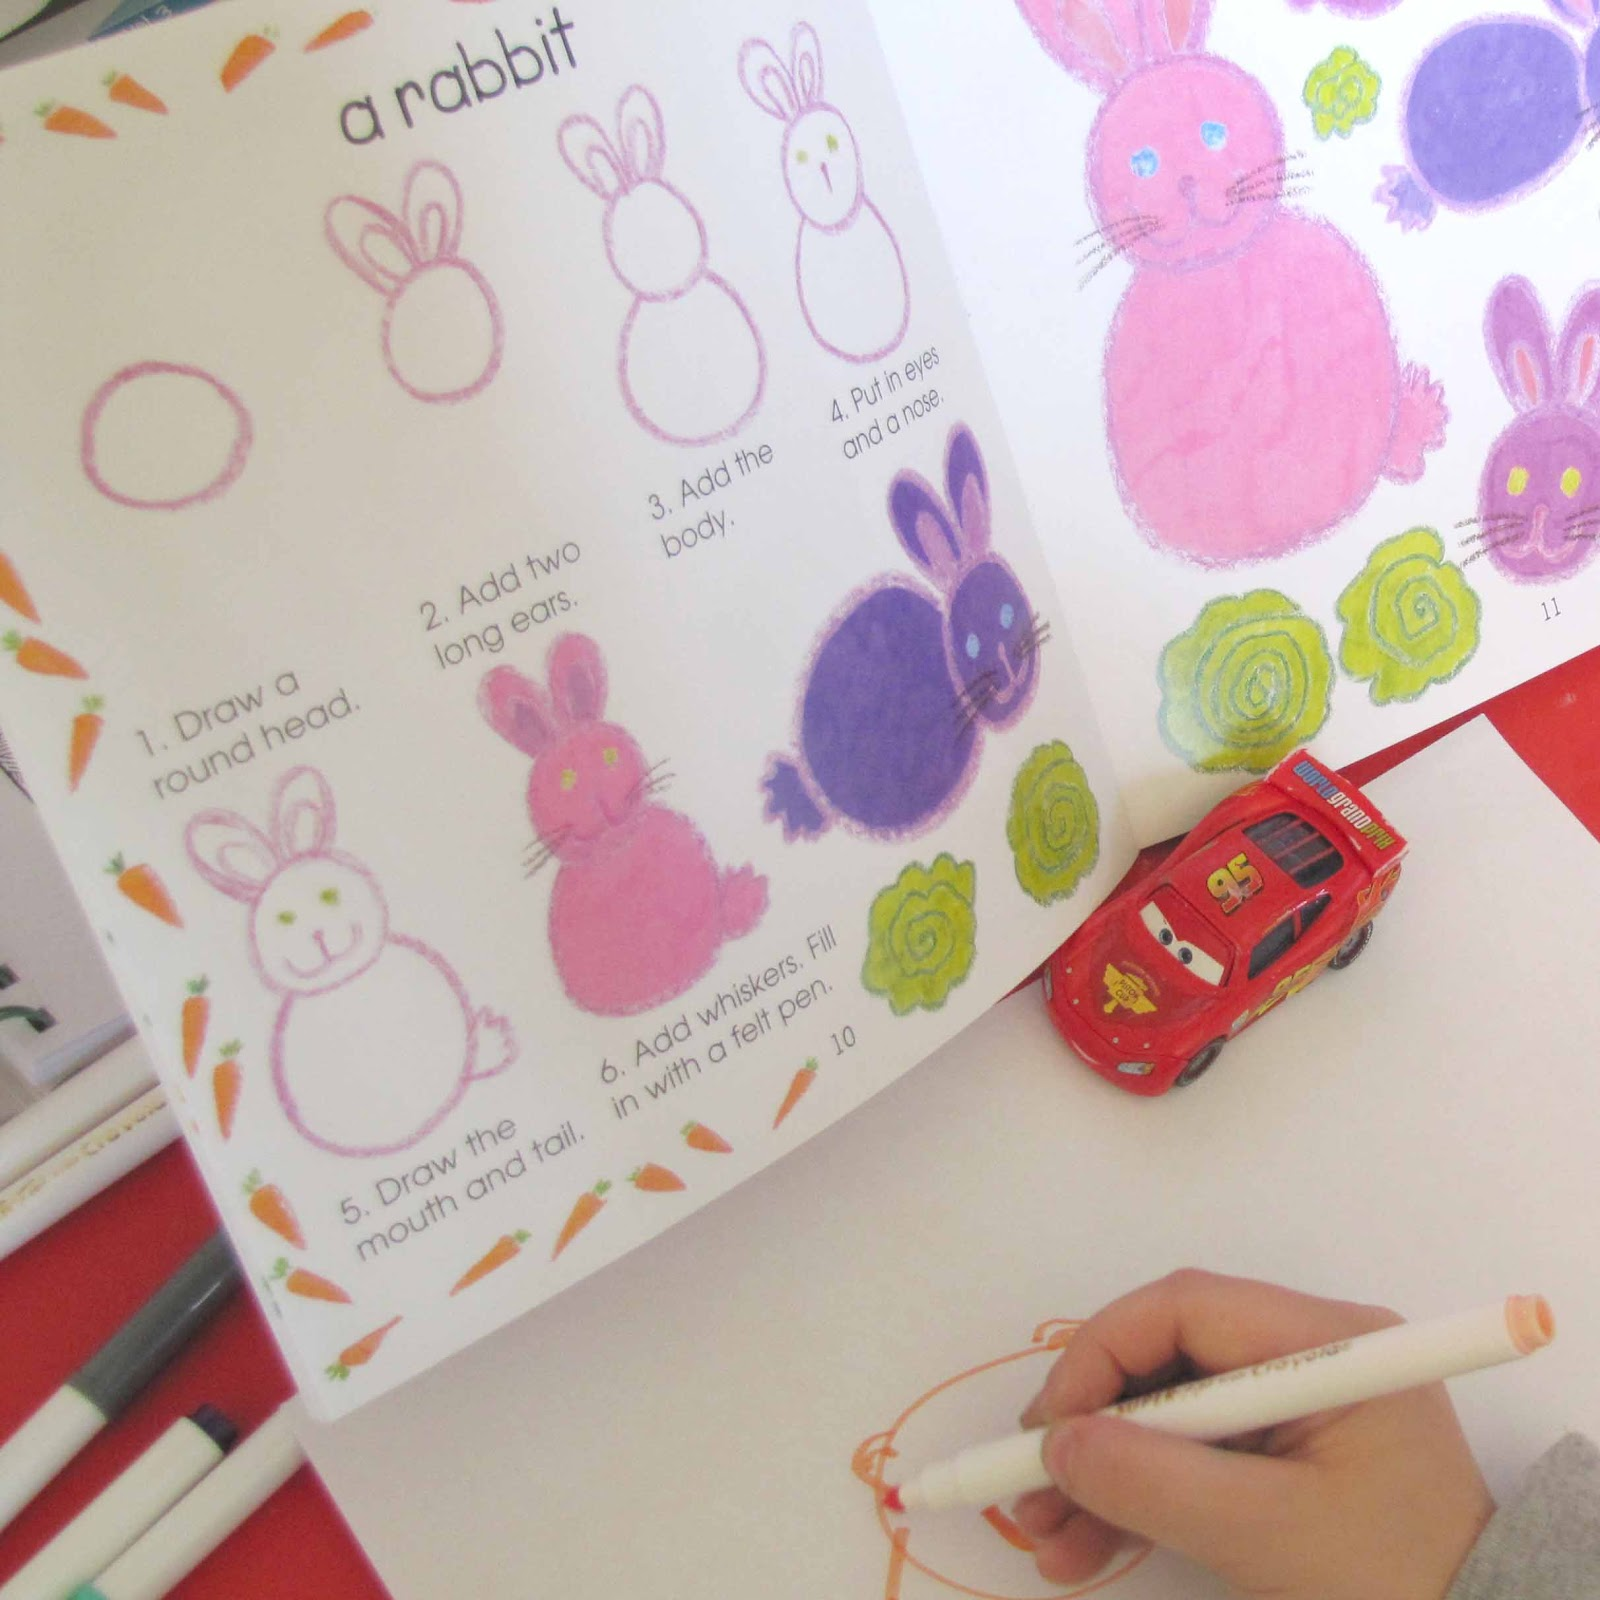 Five In A Row Activities: The Tale of Peter Rabbit | School Time ...